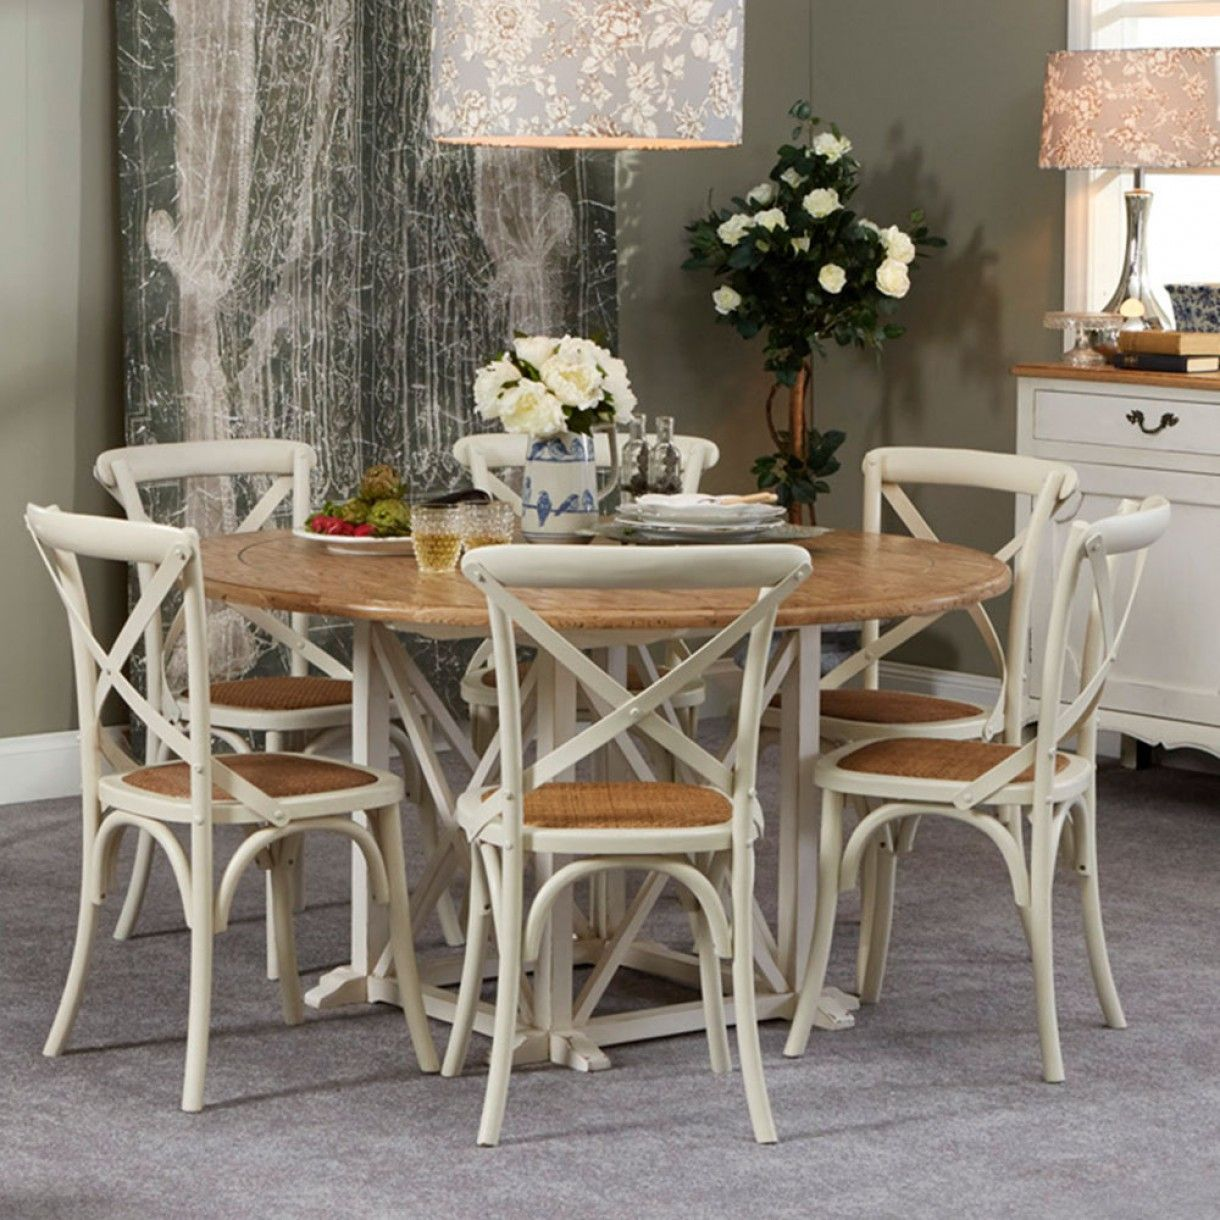 Provincial Oak Round Table White With 6 Cross Back Chairs Vintage White Package Round Dining Table White Dining Table Round Back Dining Chairs